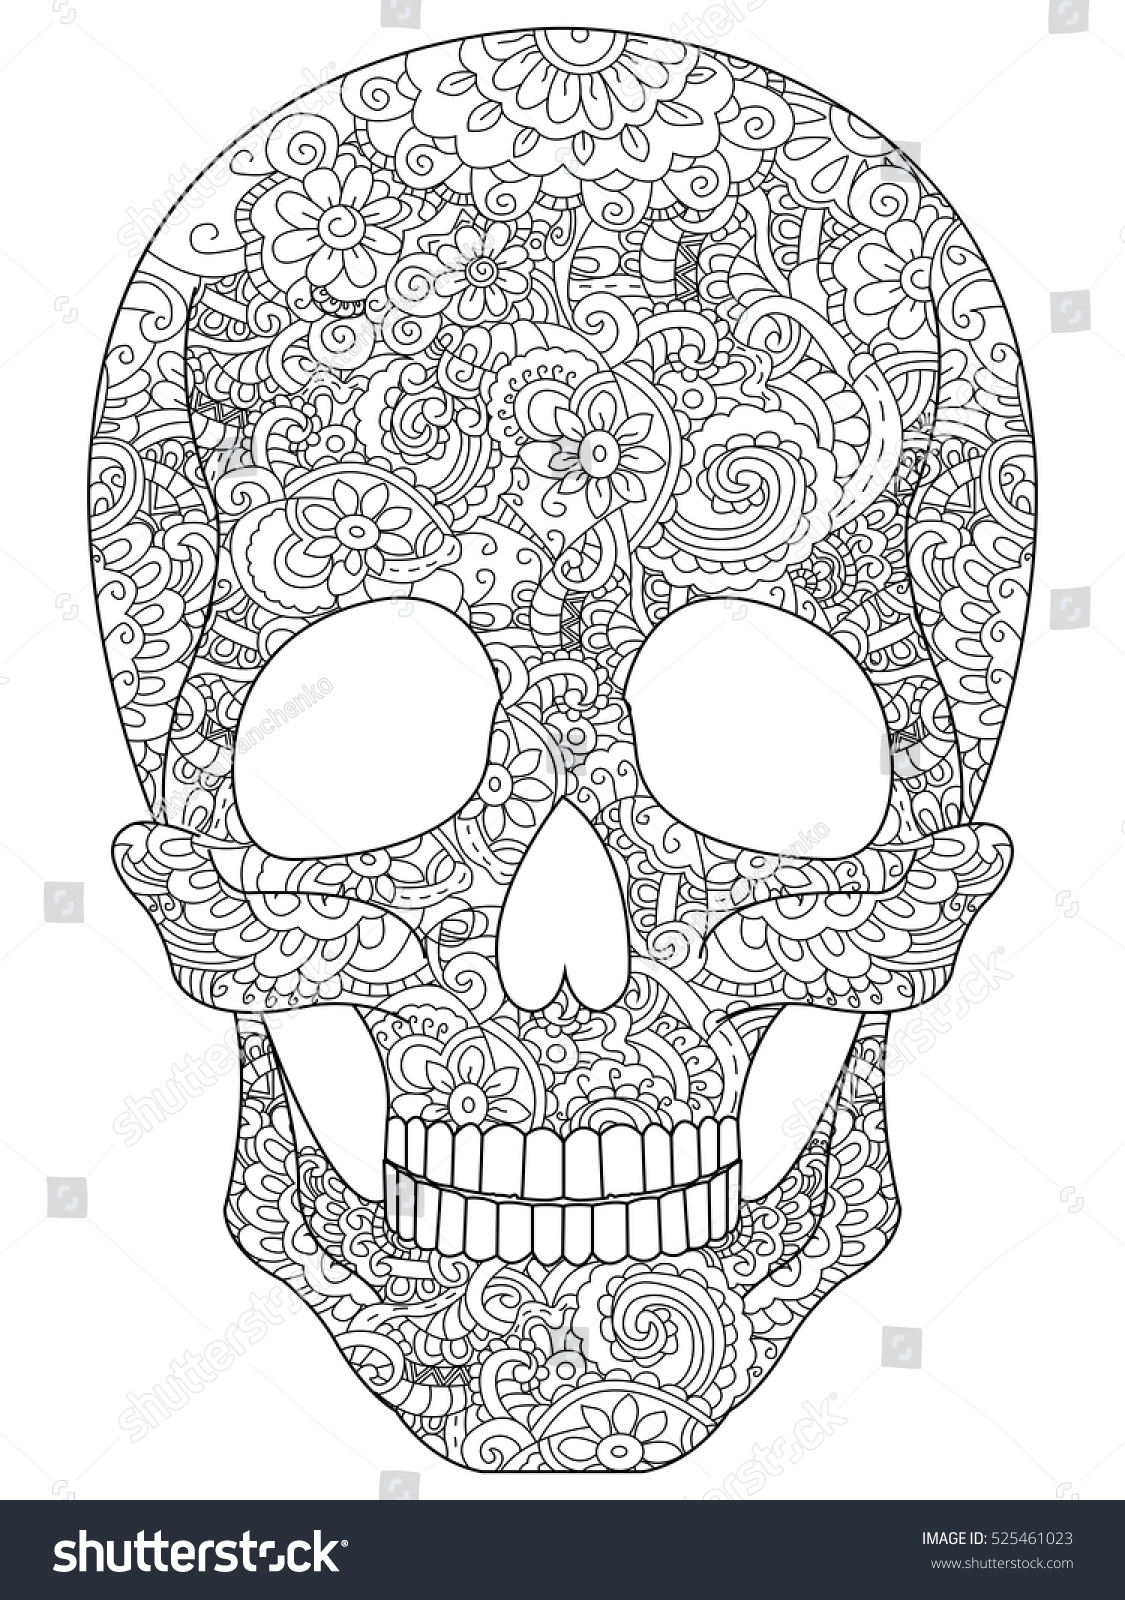 skull coloring book for adults vector illustration anti stress coloring for adult zentangle